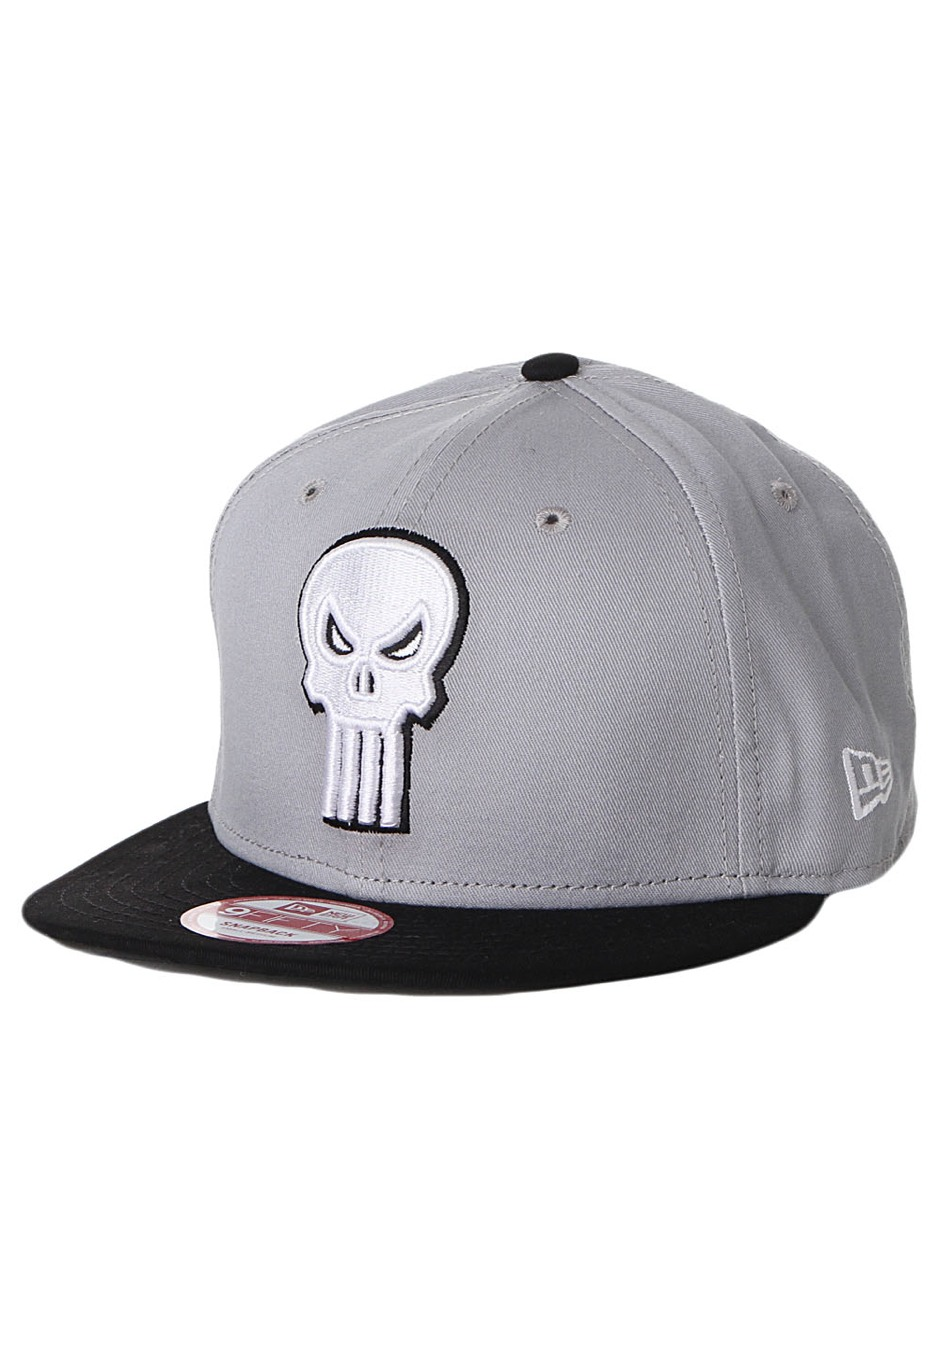 New Era - Reverse Hero Punisher Official Black Grey Snapback - Cap -  Impericon.com UK 57bca23e3a1